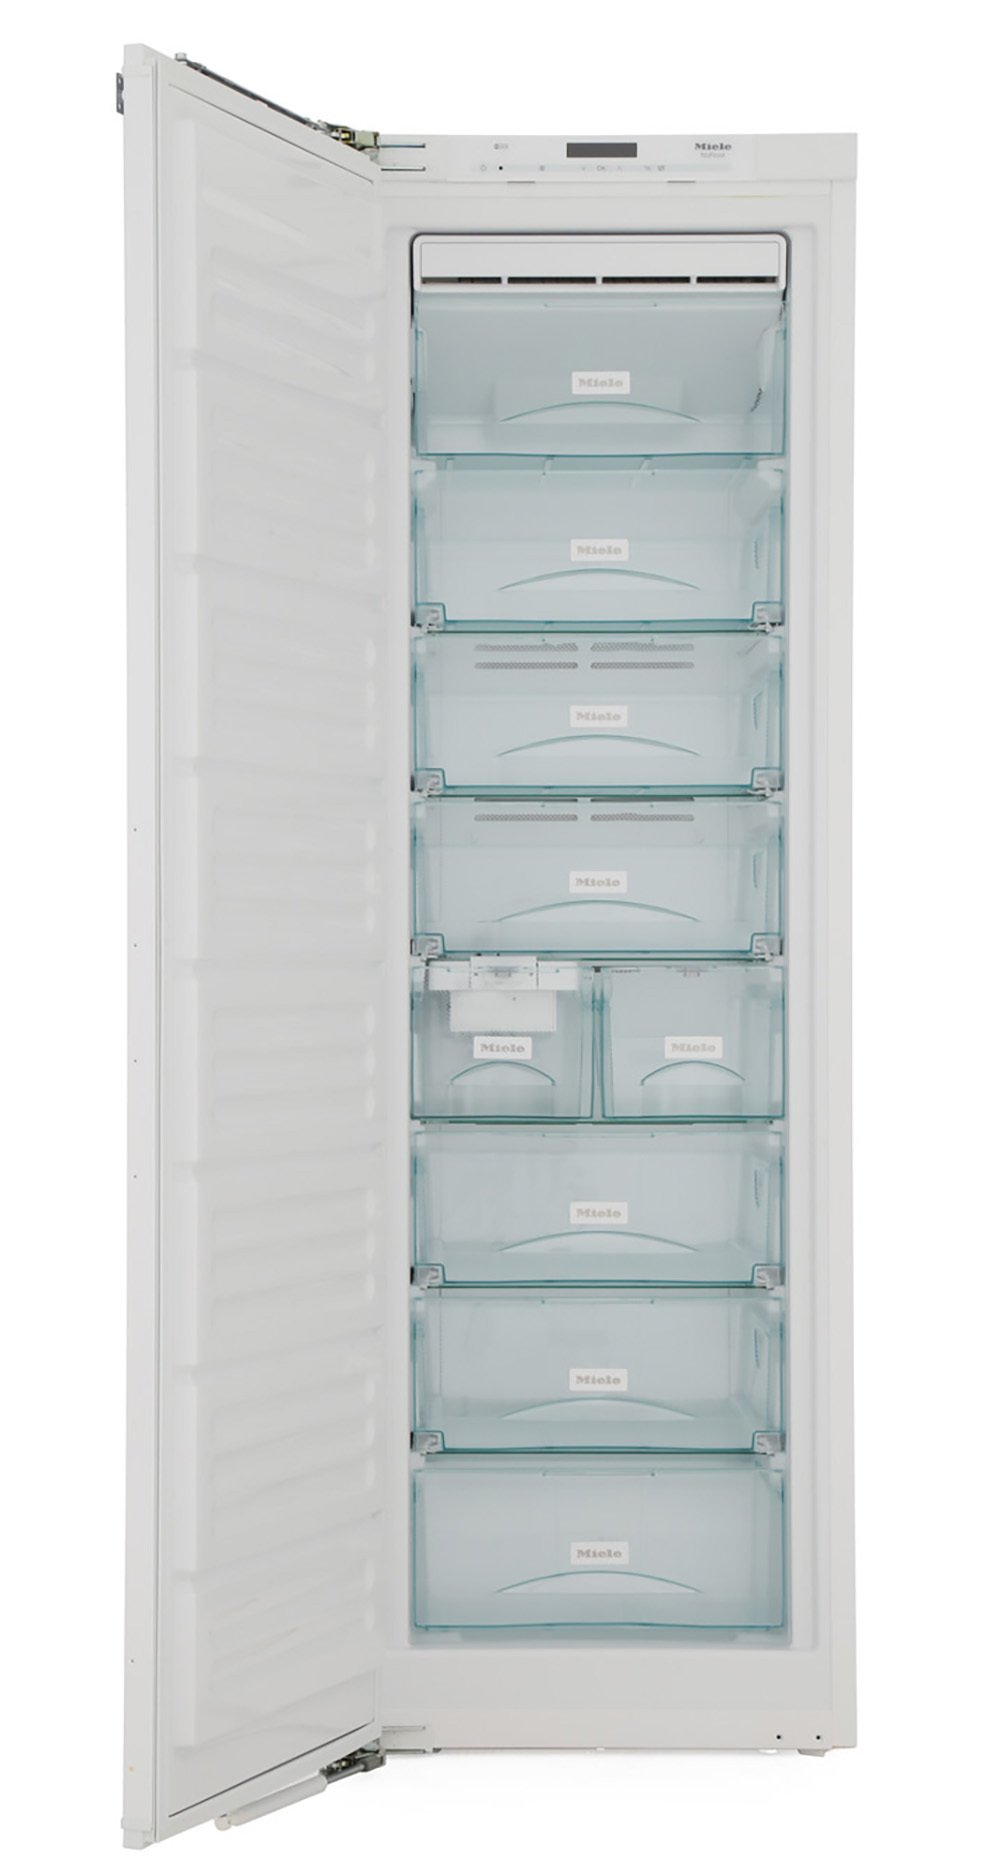 Miele FNS37492iE Frost Free Built In Freezer